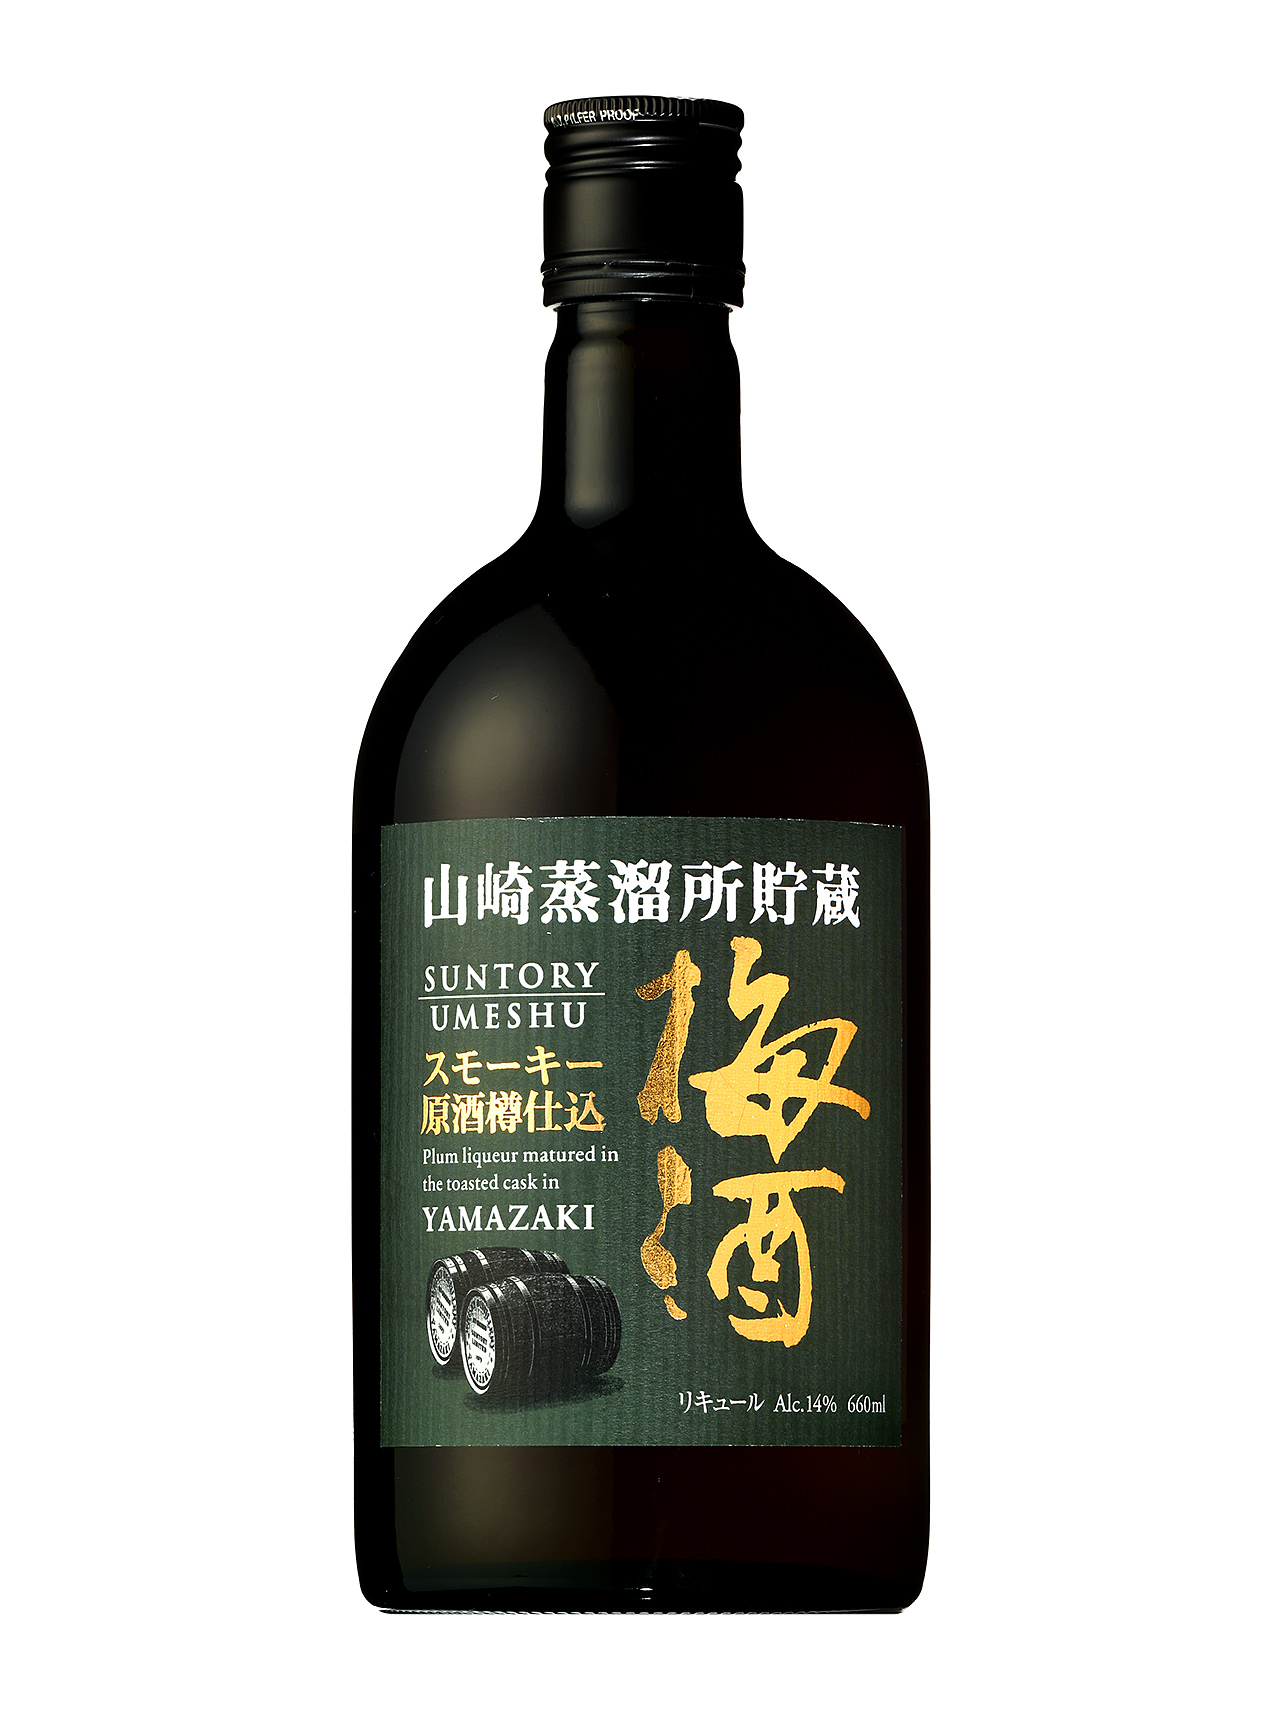 Yamazaki Umeshu is getting a smoky cask-aged edition